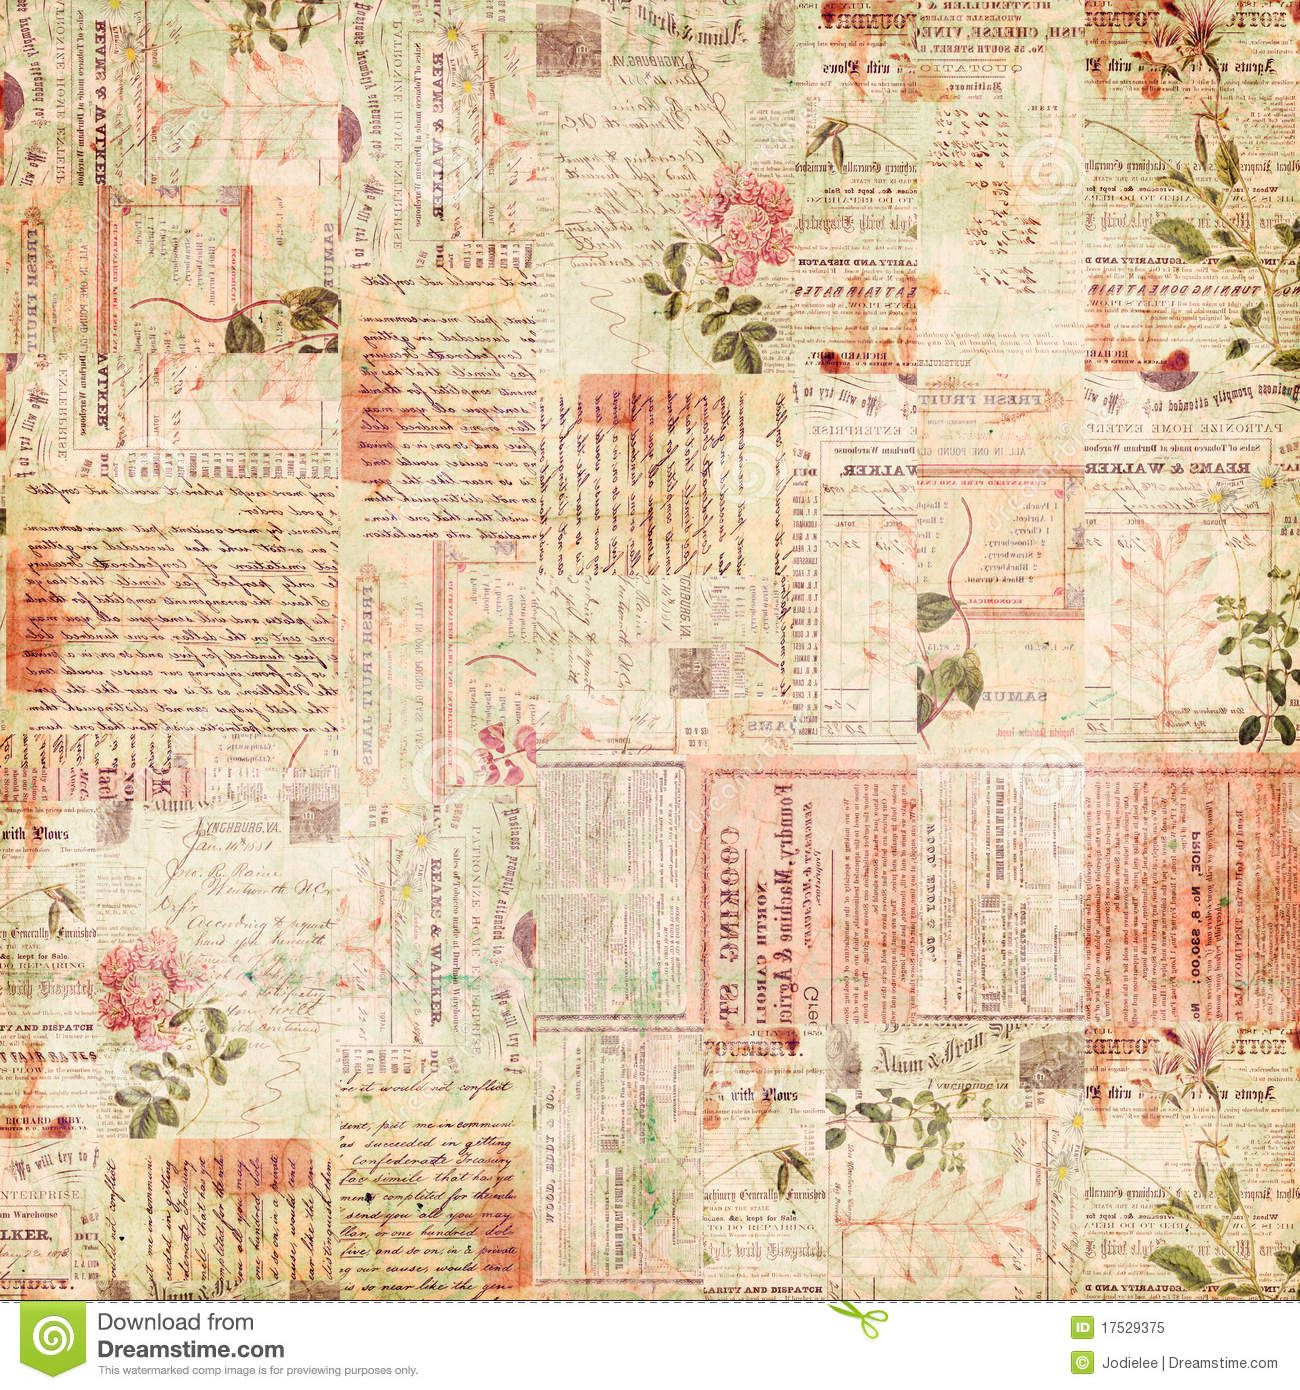 Vintage paper ephemera, text and flowers collage